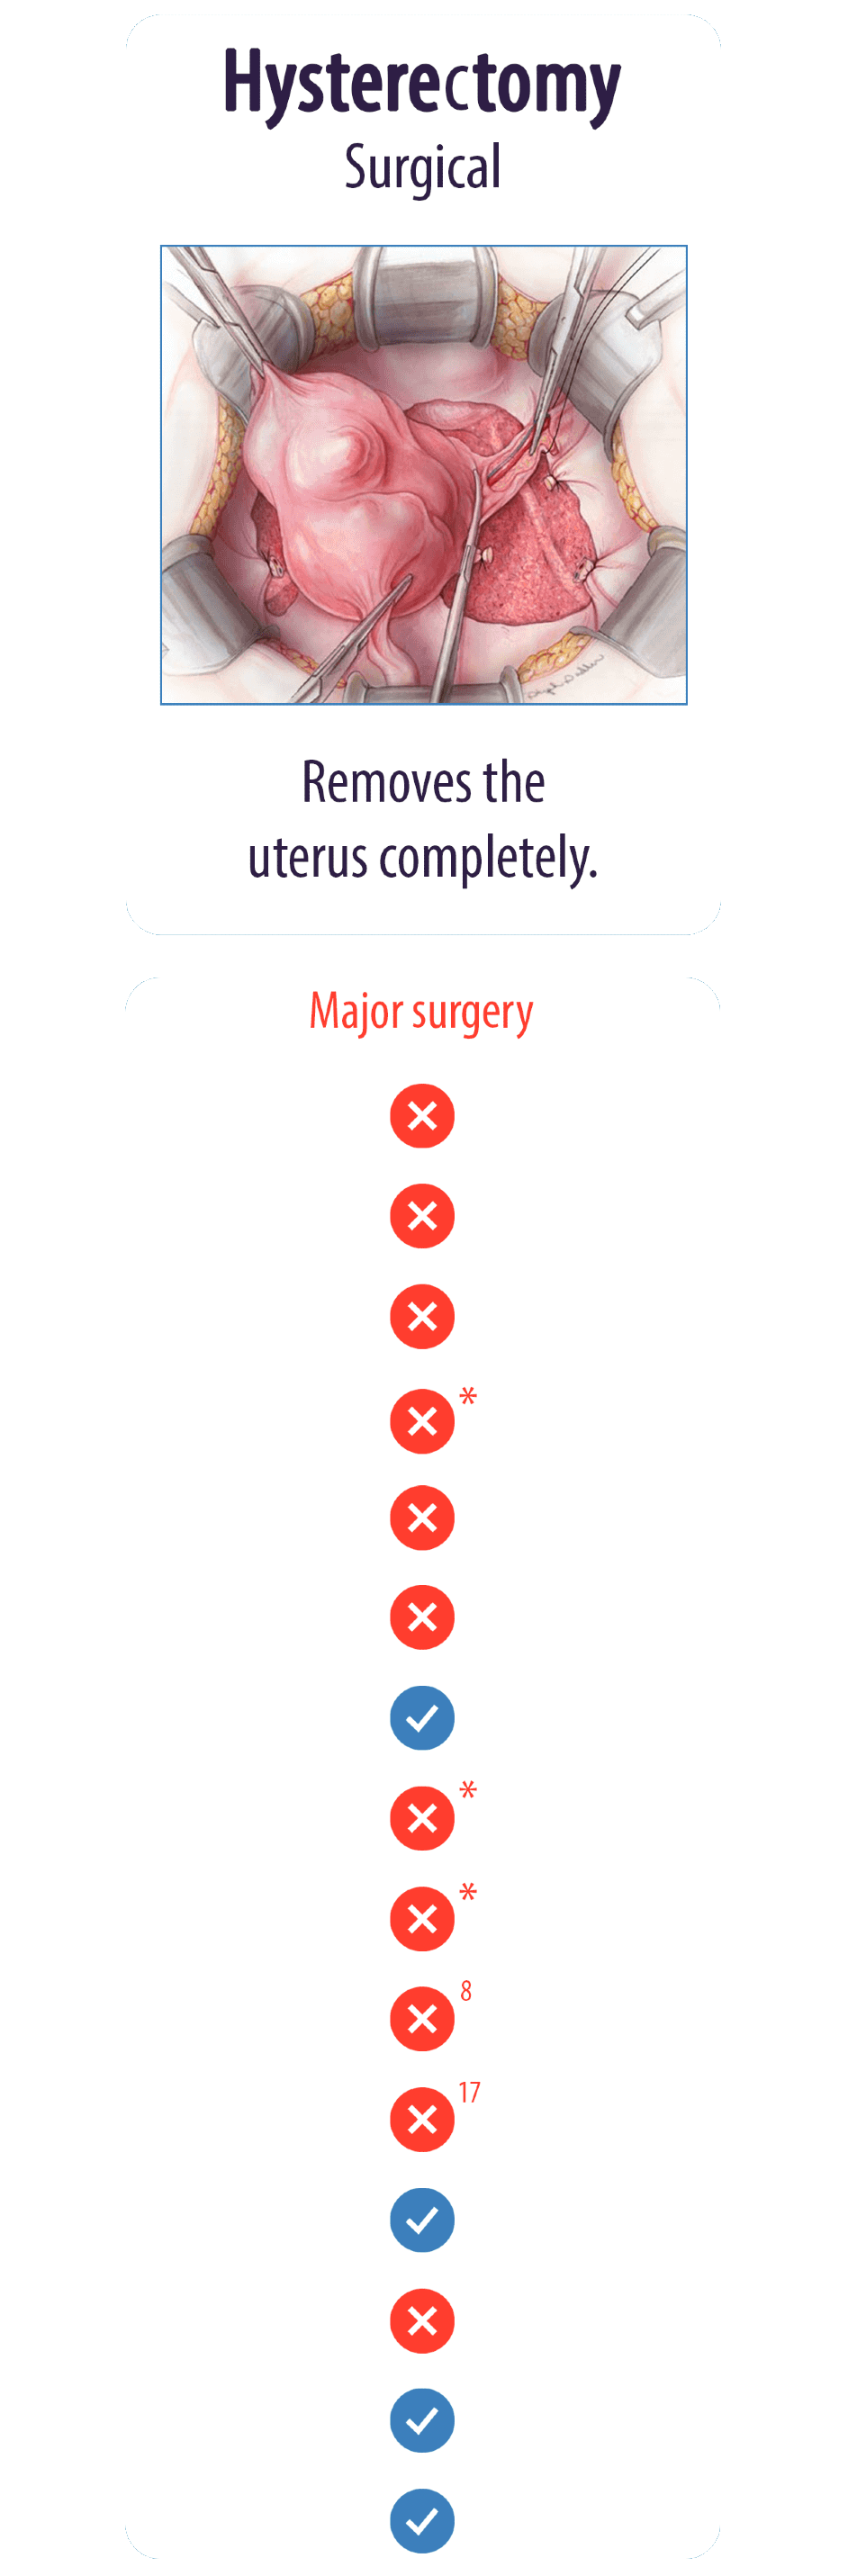 Hysterectomy Surgical